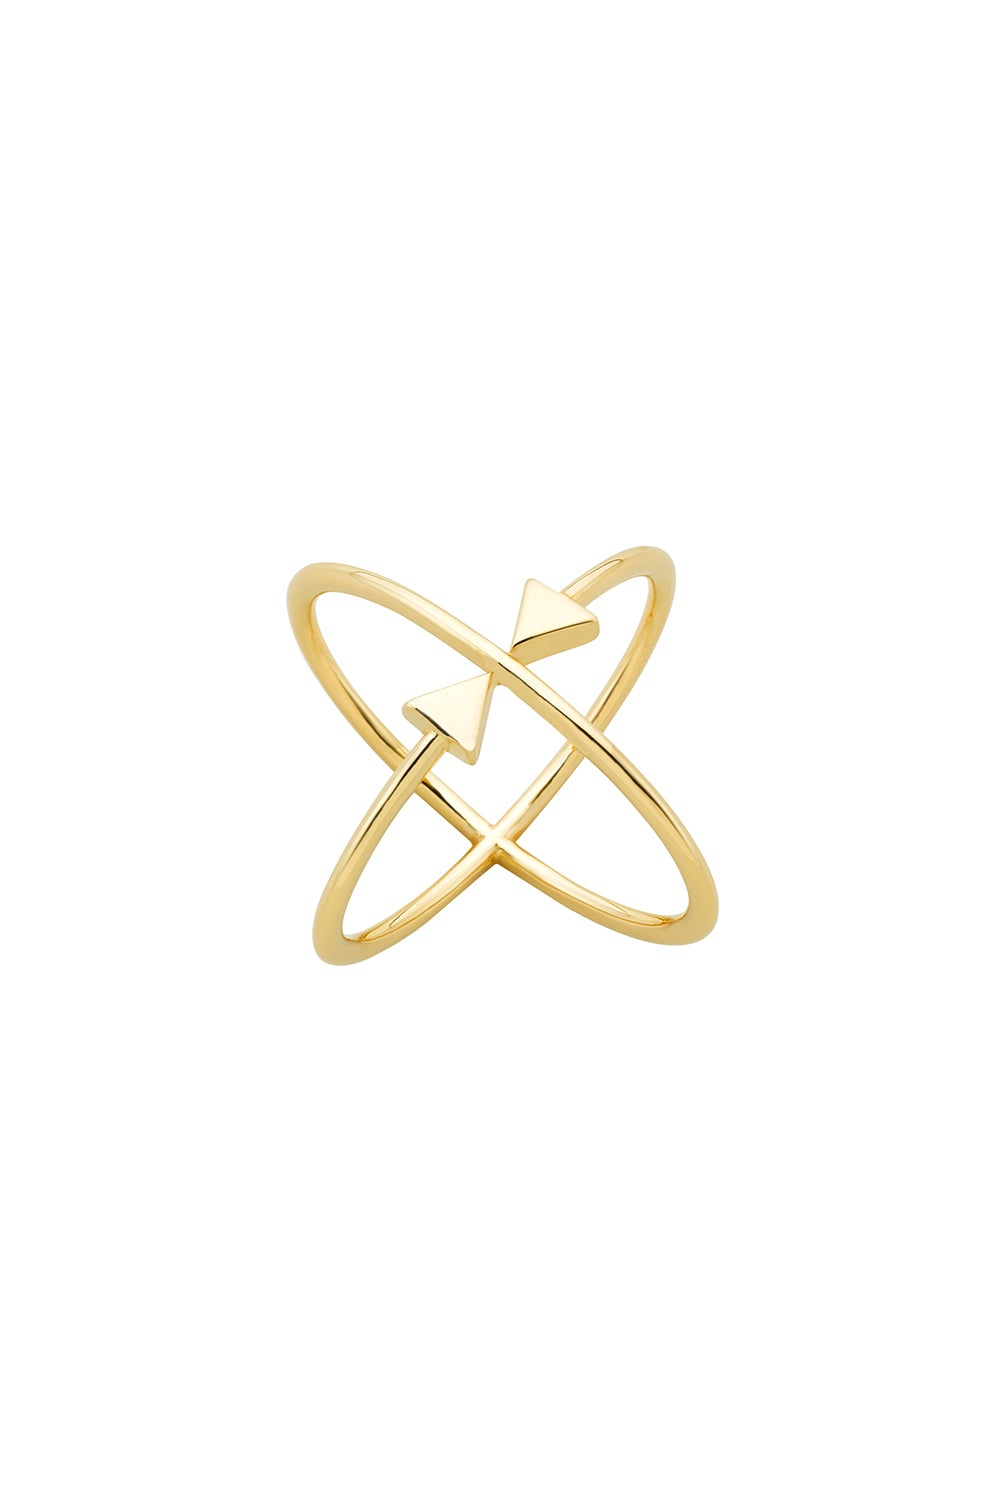 Atomic Arrows Ring Gold